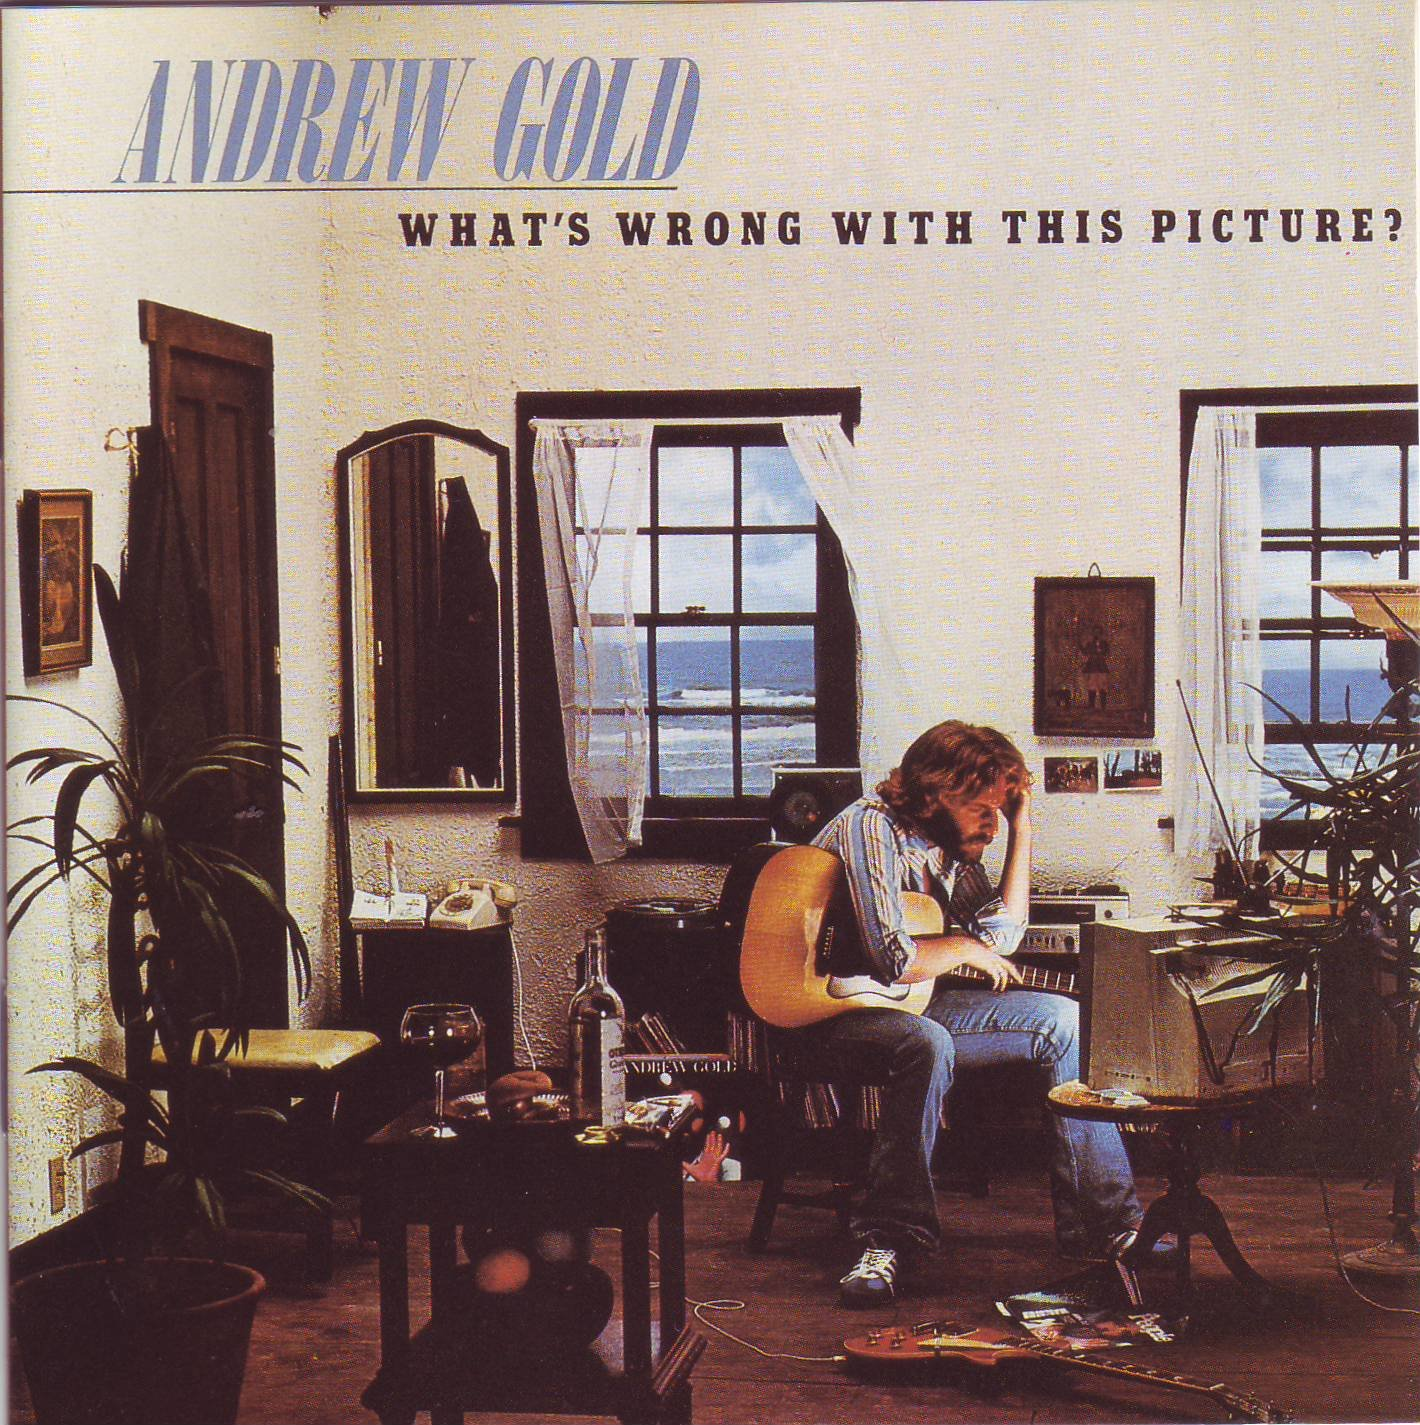 Andrew Gold at Vinyl Record Memories.